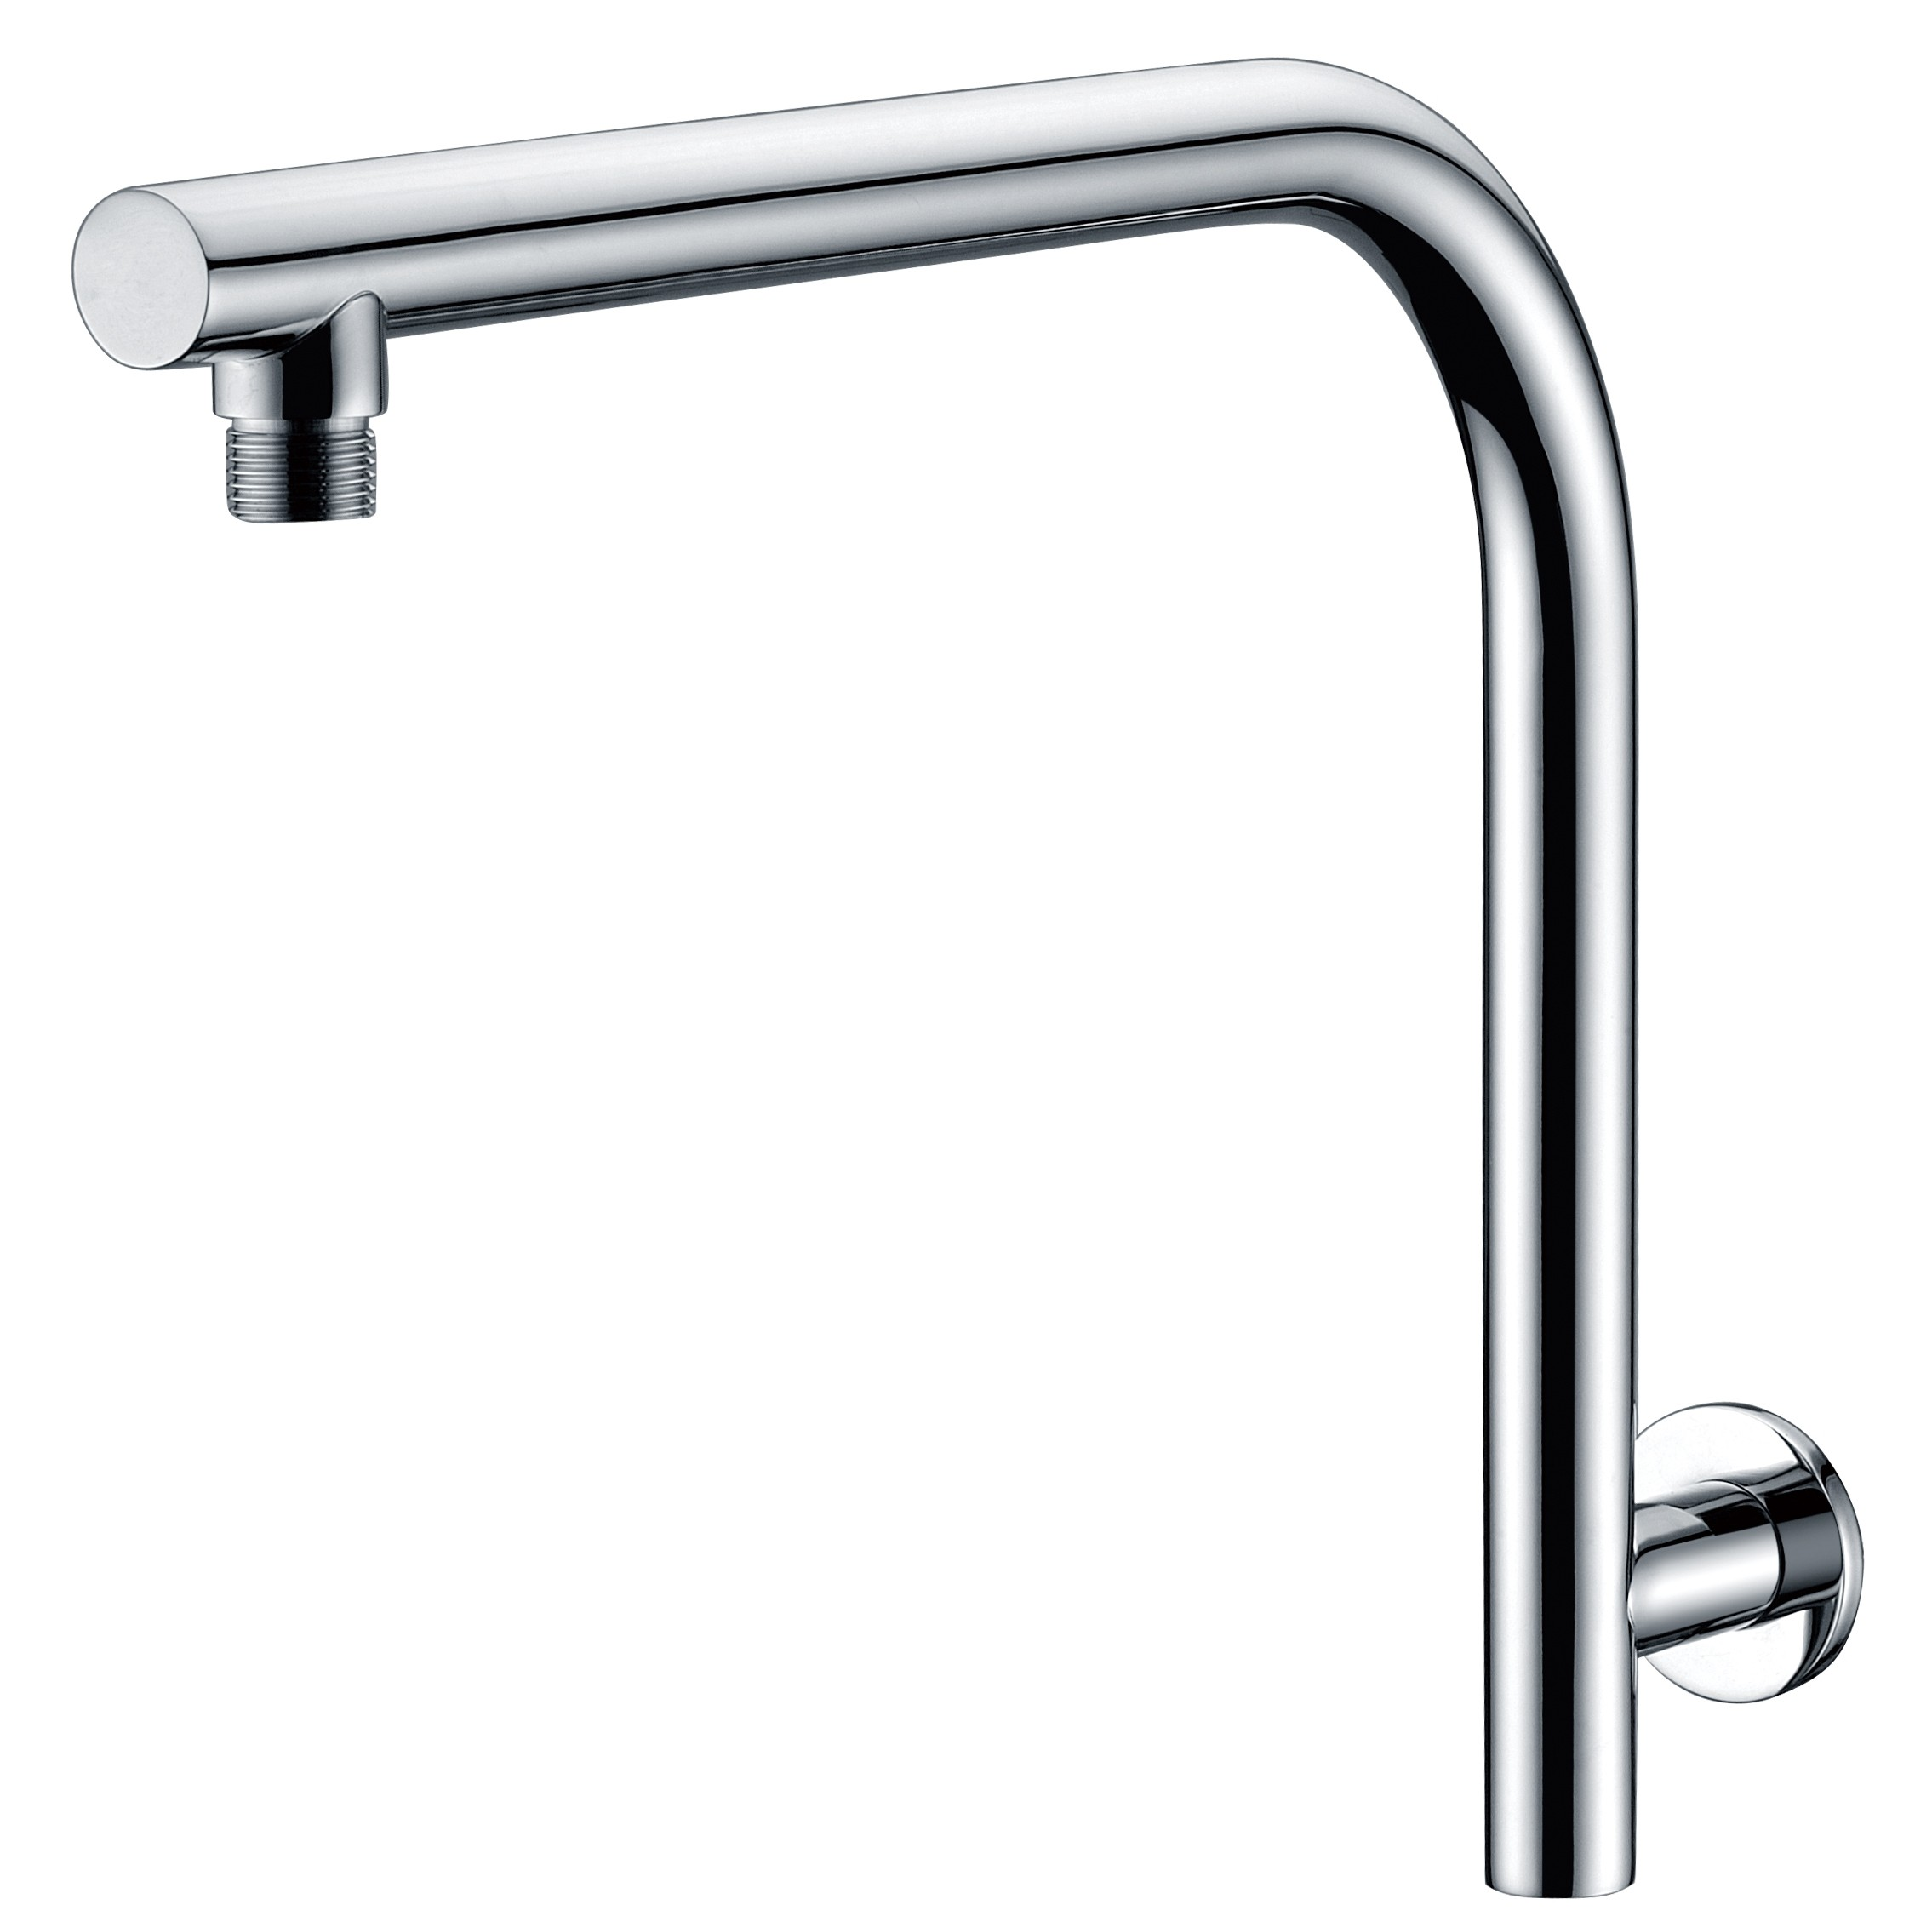 RONDO HRS-2 ROUND HIGH RISE SHOWER ARM WALL